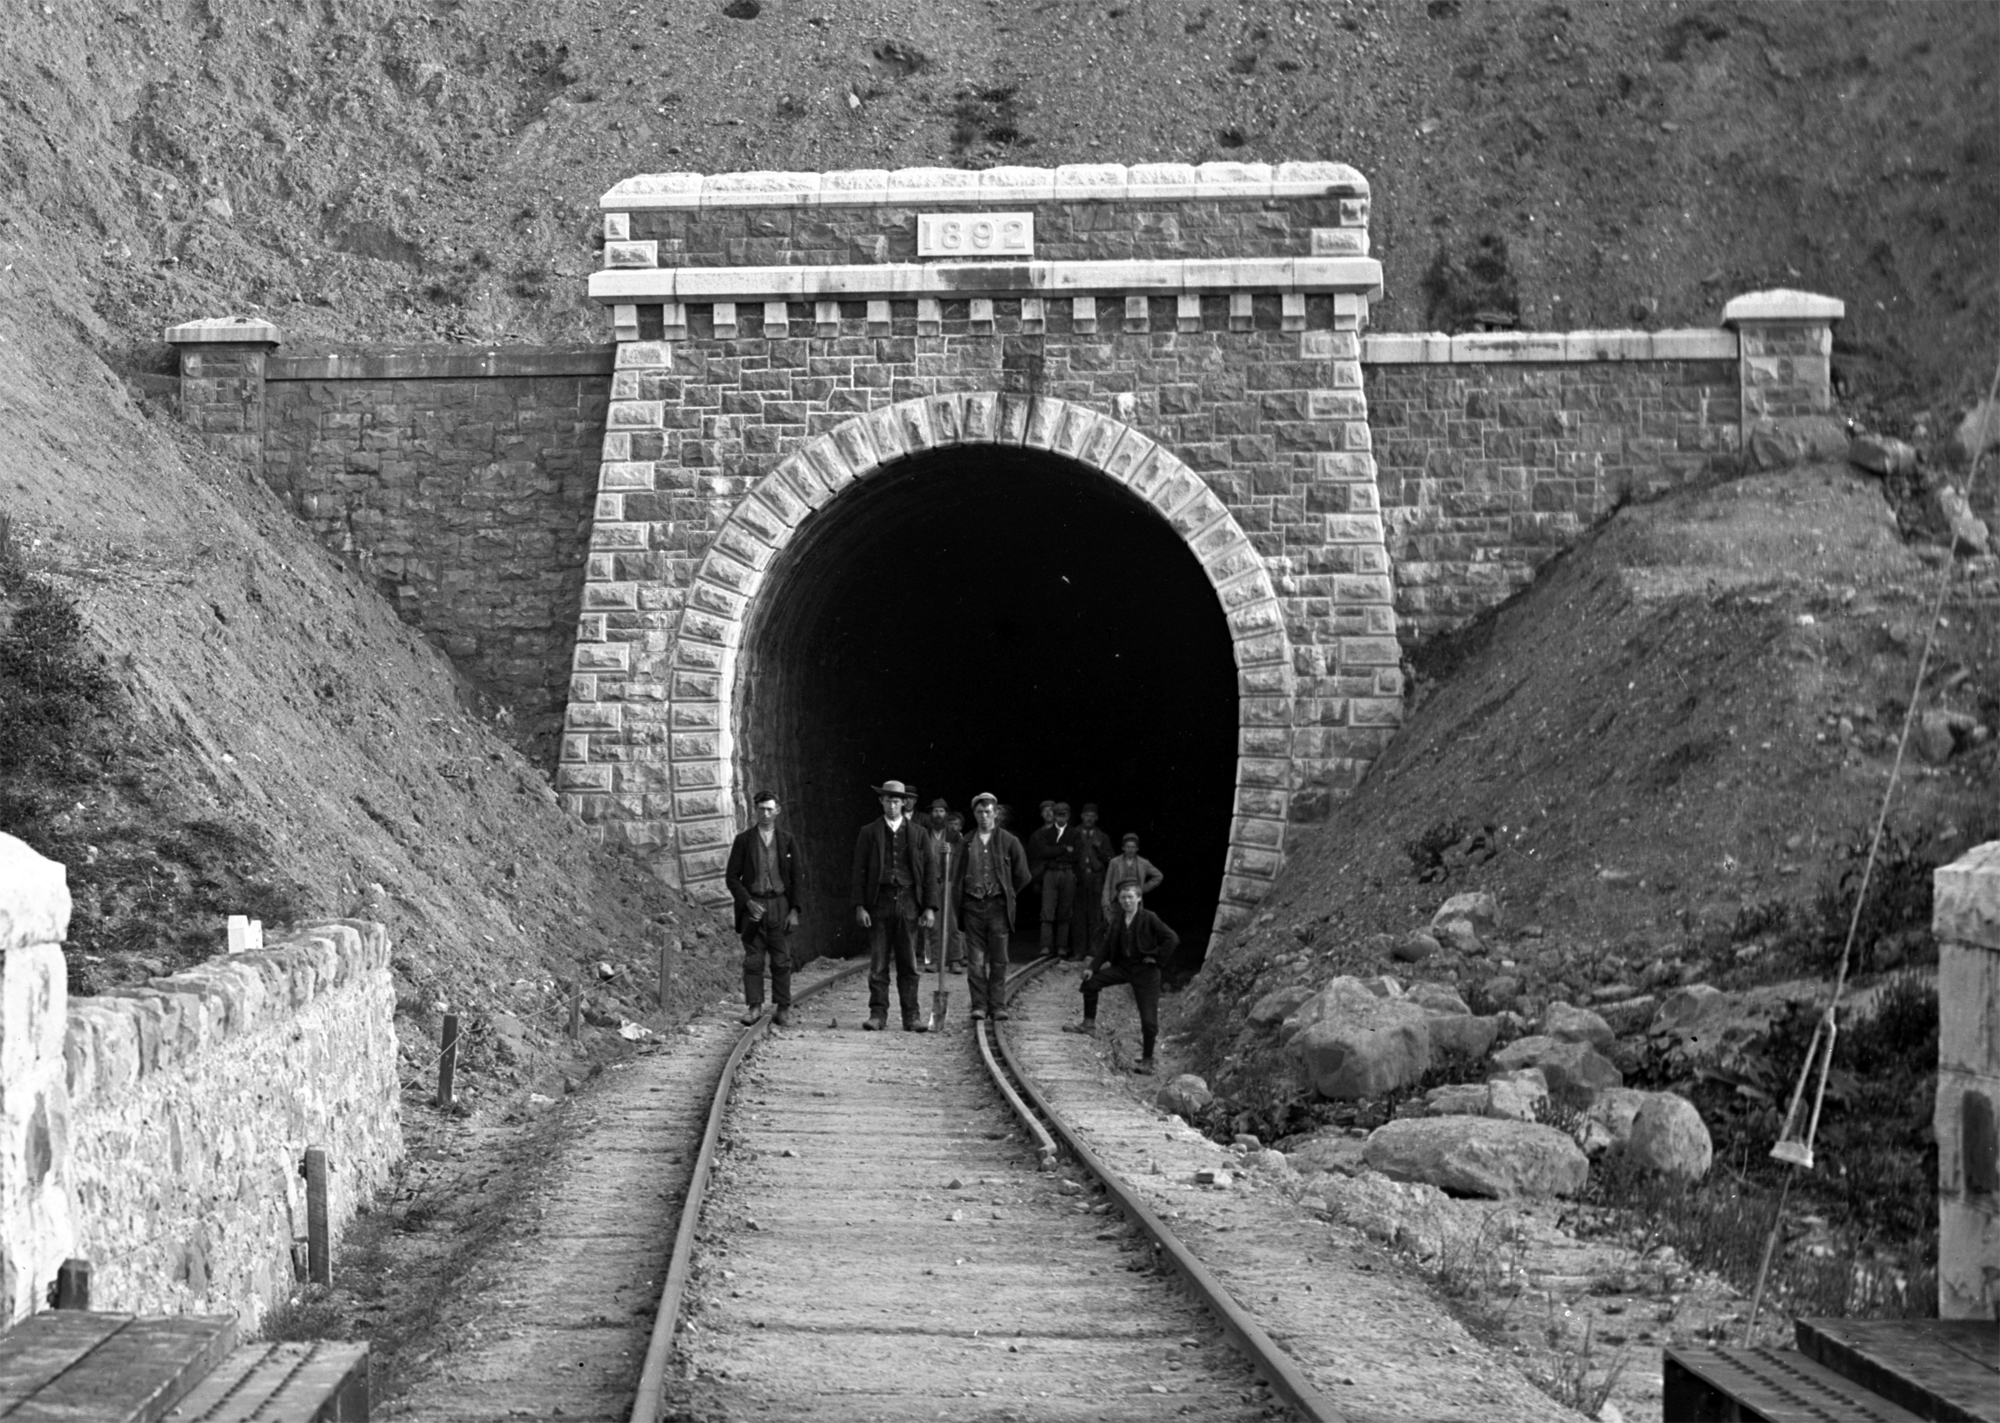 Railway_tunnel_at_Newport__County_Mayo.jpg